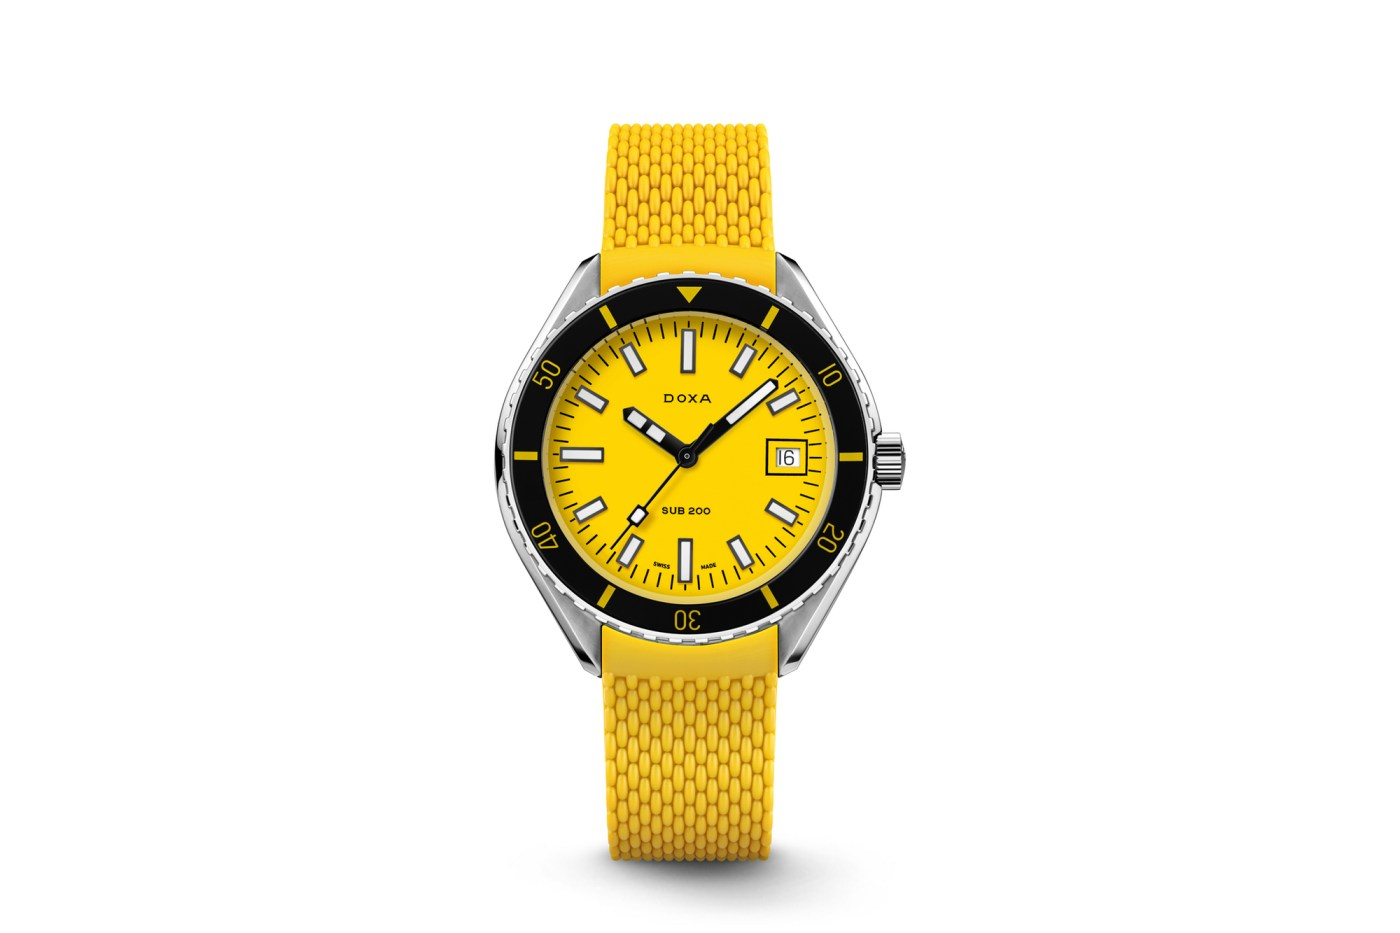 Doxa Sub 200 Yellow rubber strap